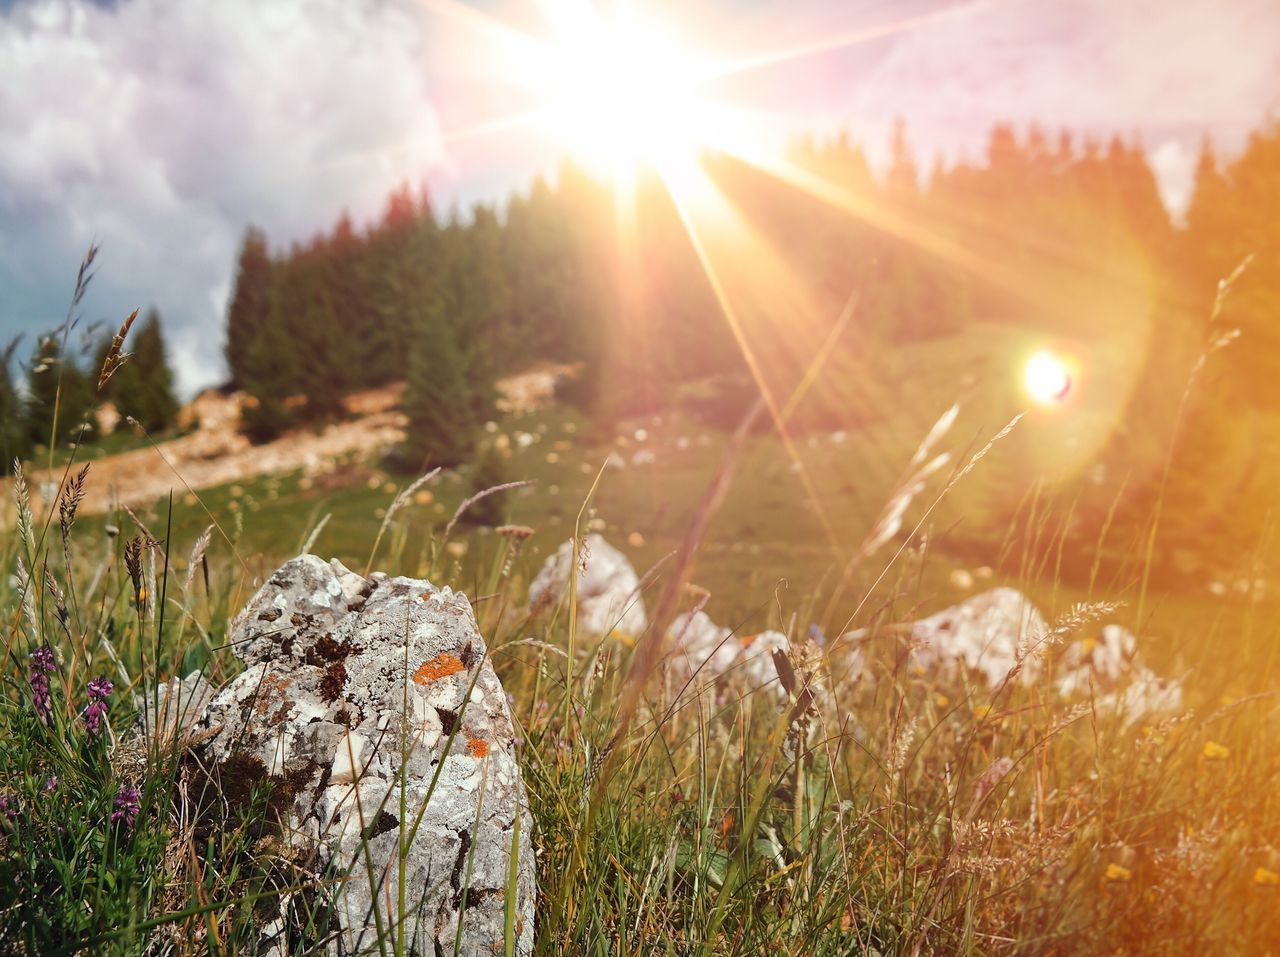 Mountain flares... Sunlight Lens Flare Sun Sunbeam Growth Nature Grass Field Beauty In Nature Tranquility Outdoors Tranquil Scene Plant Day Sunset Scenics Close-up Landscape Sky Forest Mountain Rock Landscapes Landscape_Collection Made In Romania